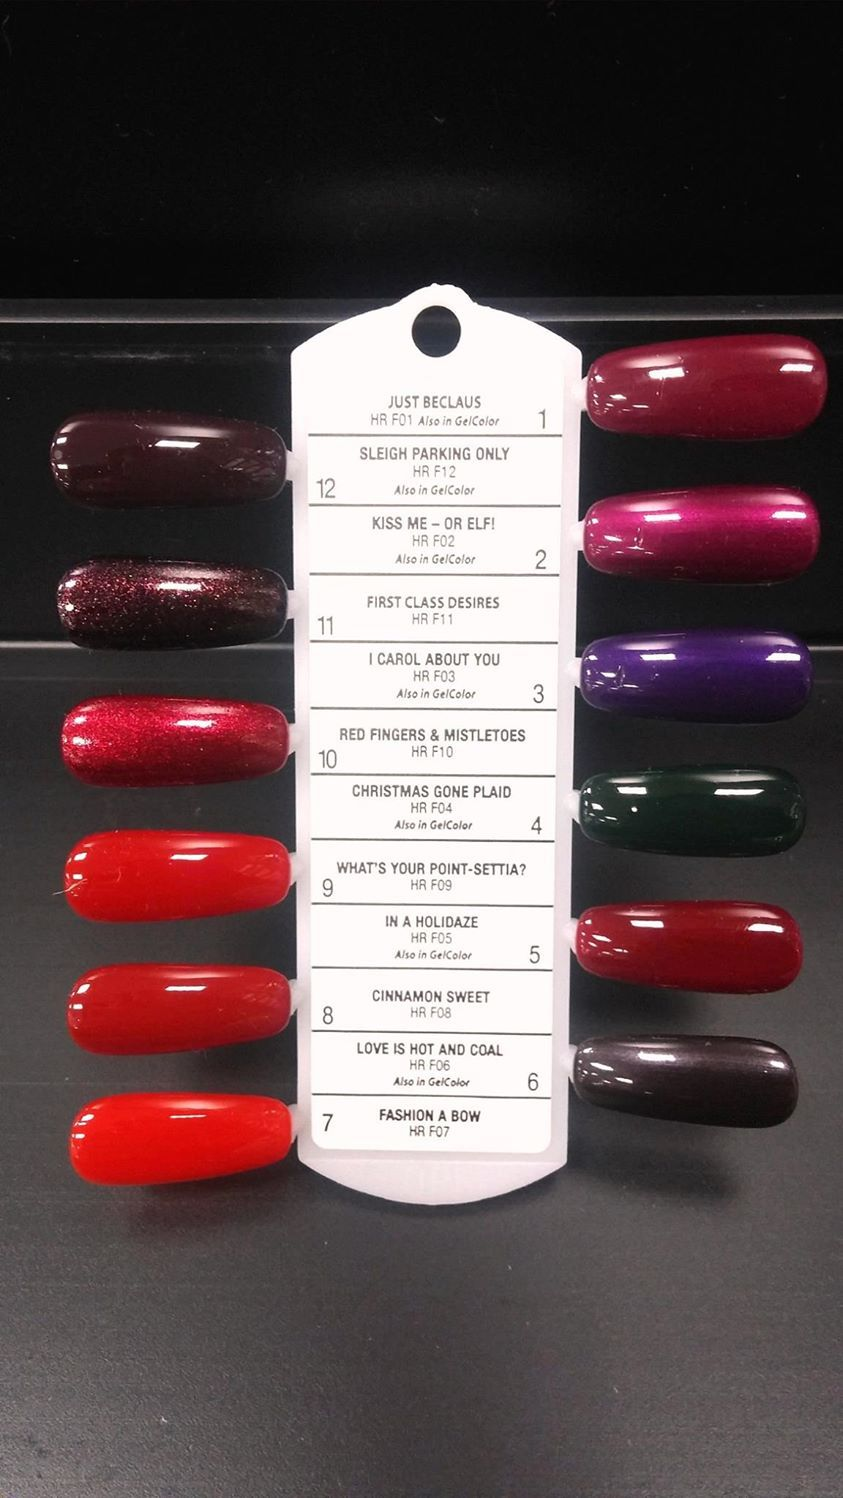 New* OPI Gwen Stefani 2014 Holiday Collection